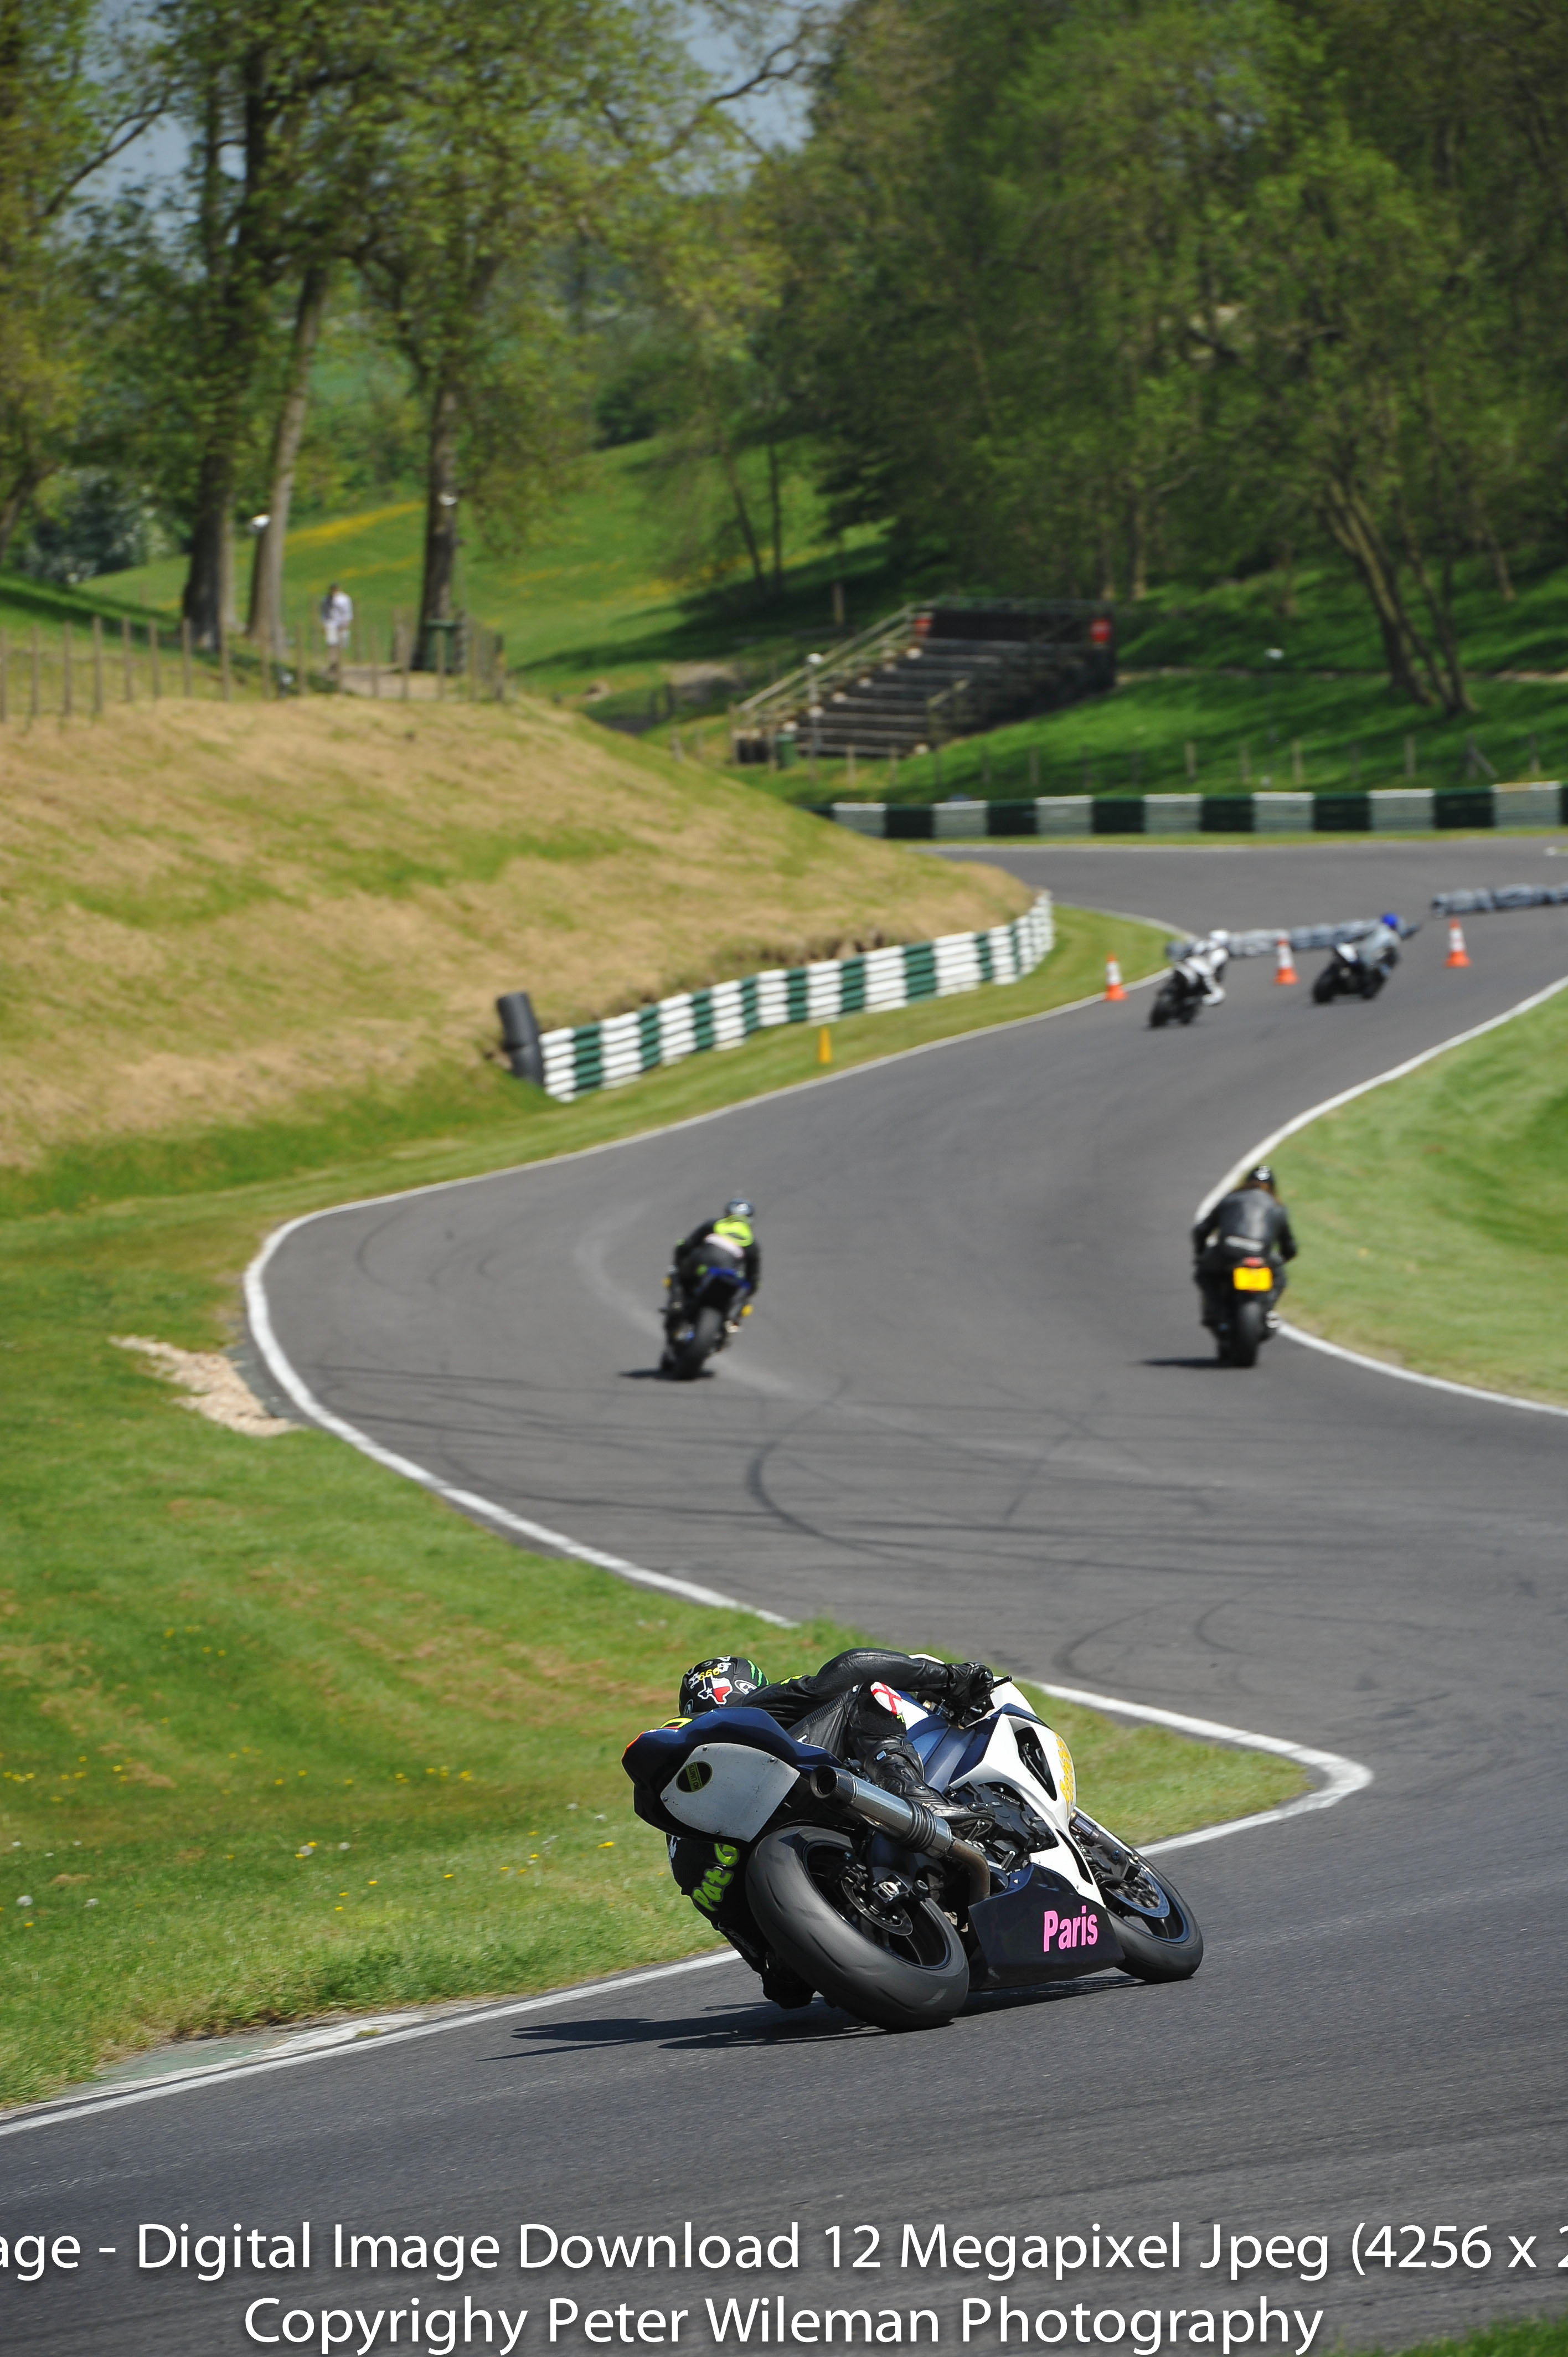 28-05-2012 Cadwell Park trackday photographs